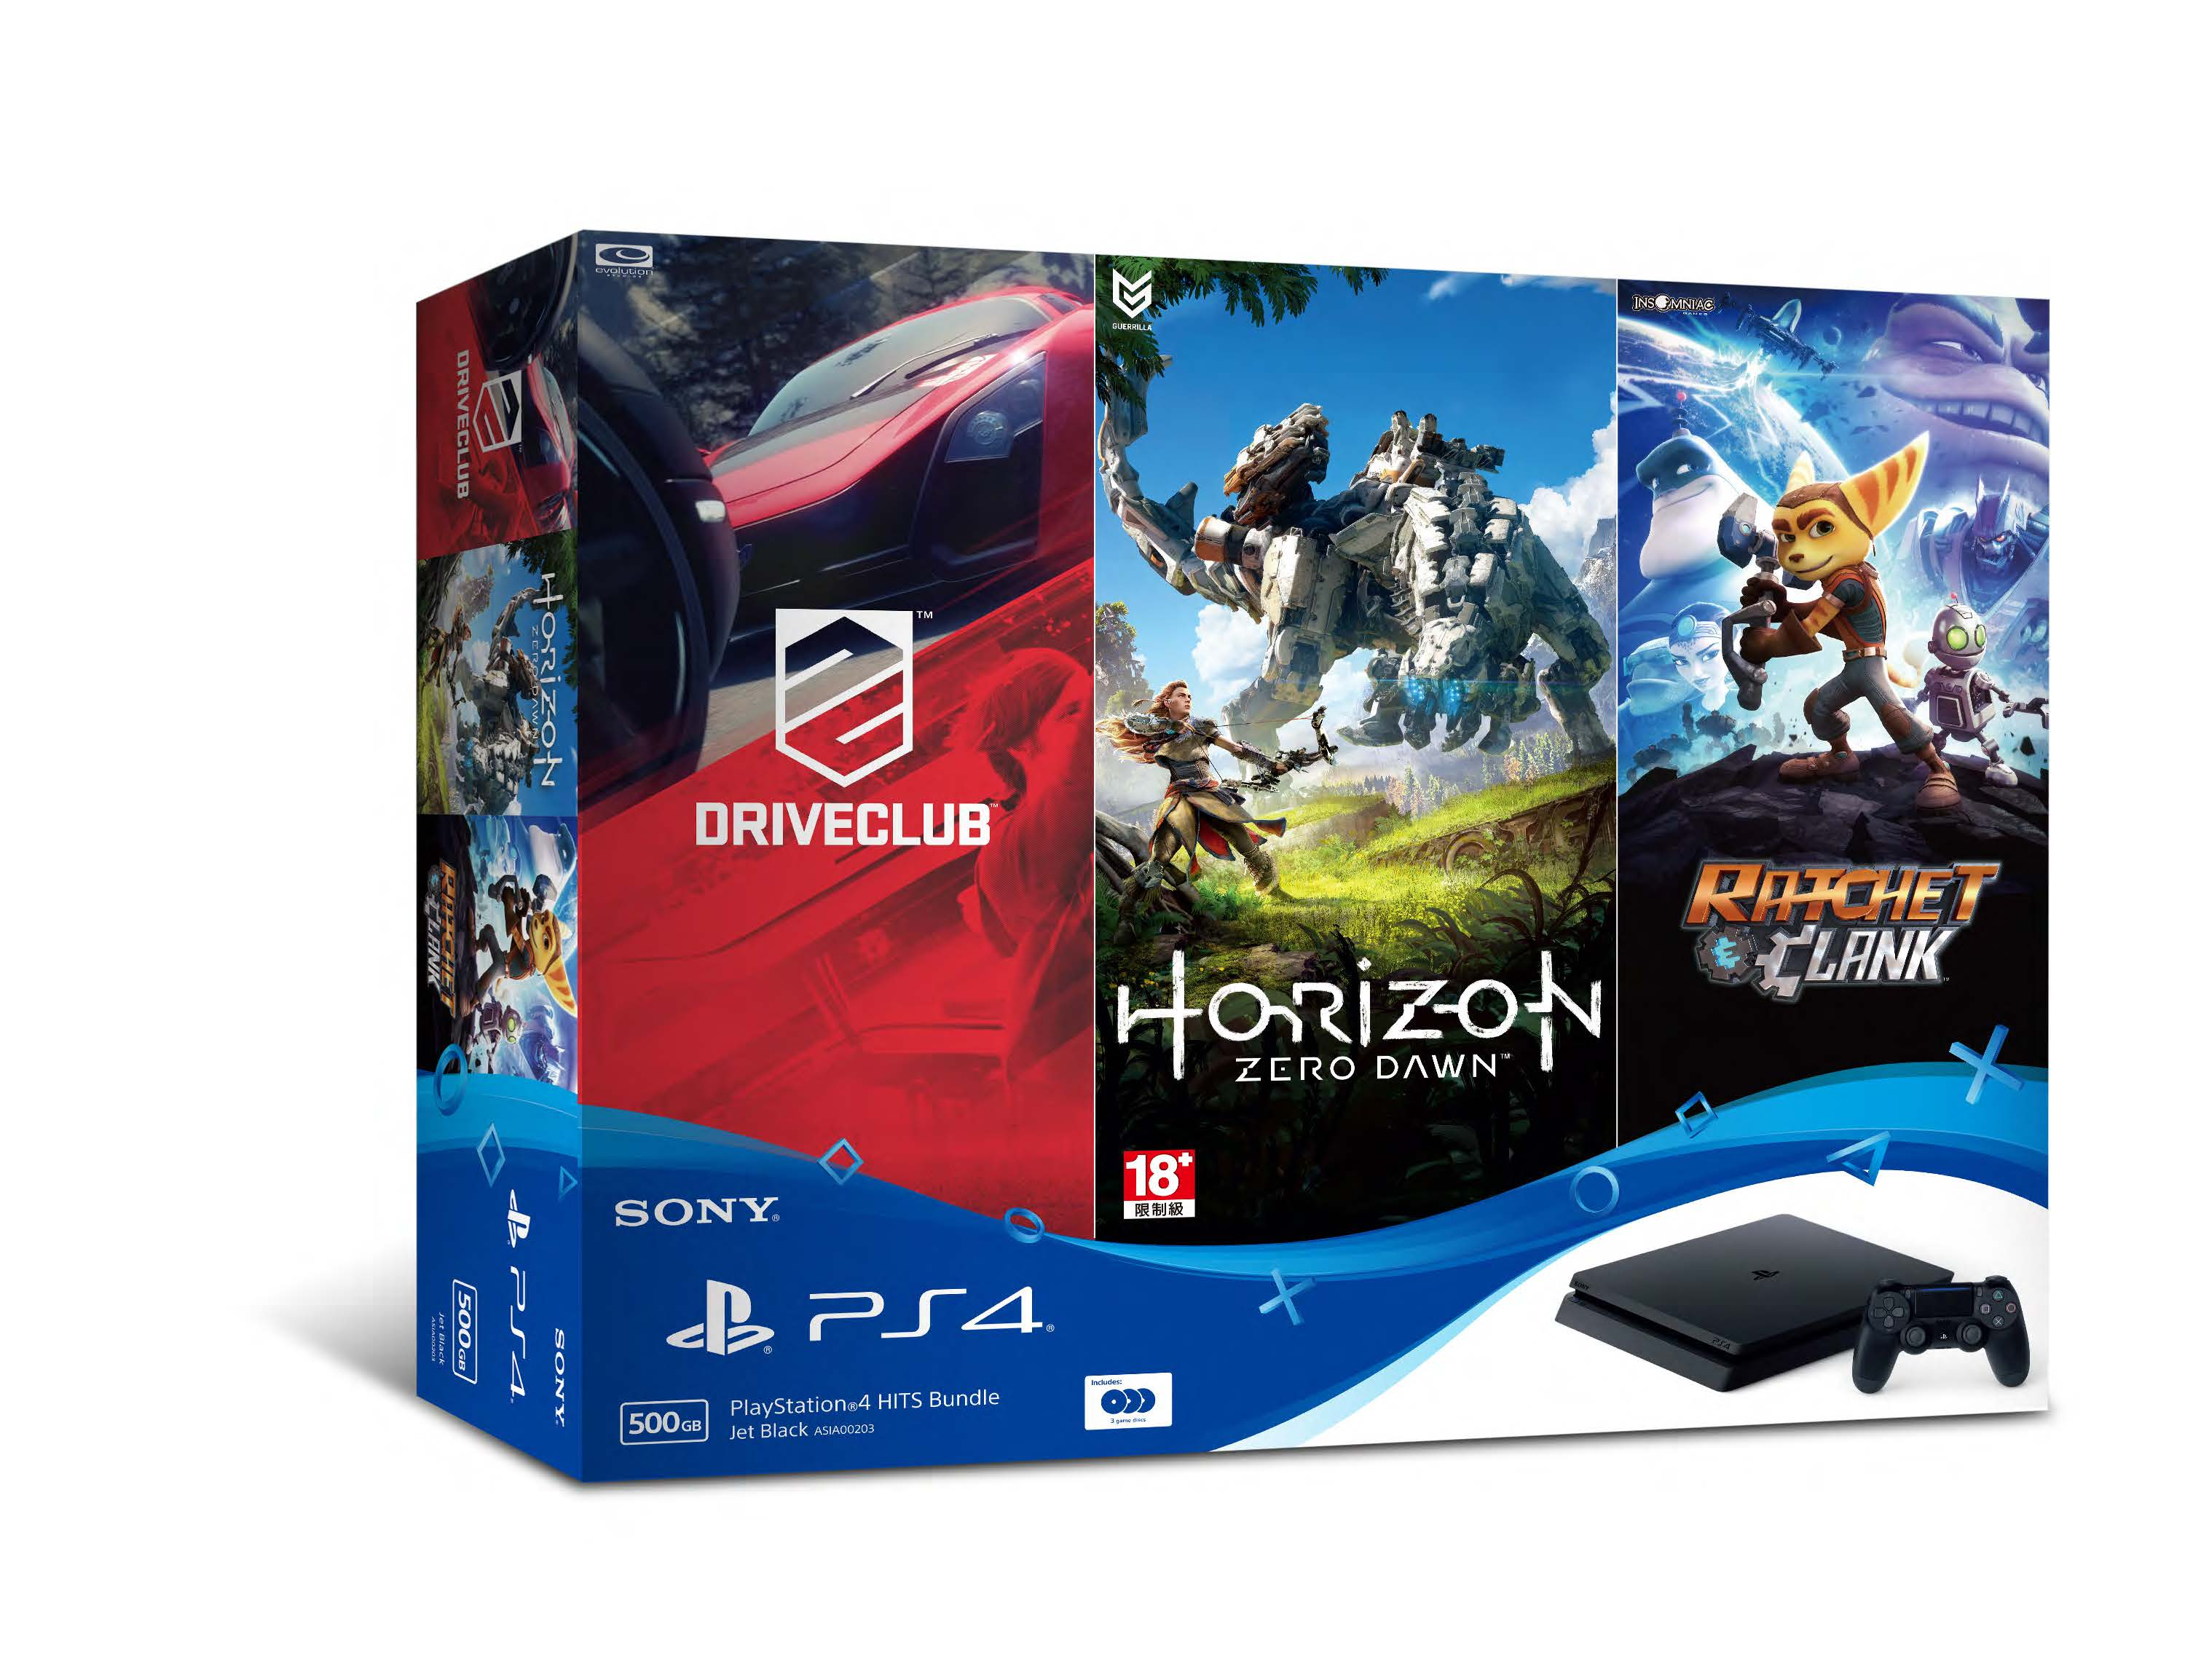 4 Games That Comes With Ps4 : Playstation hits bundle comes with games for only p